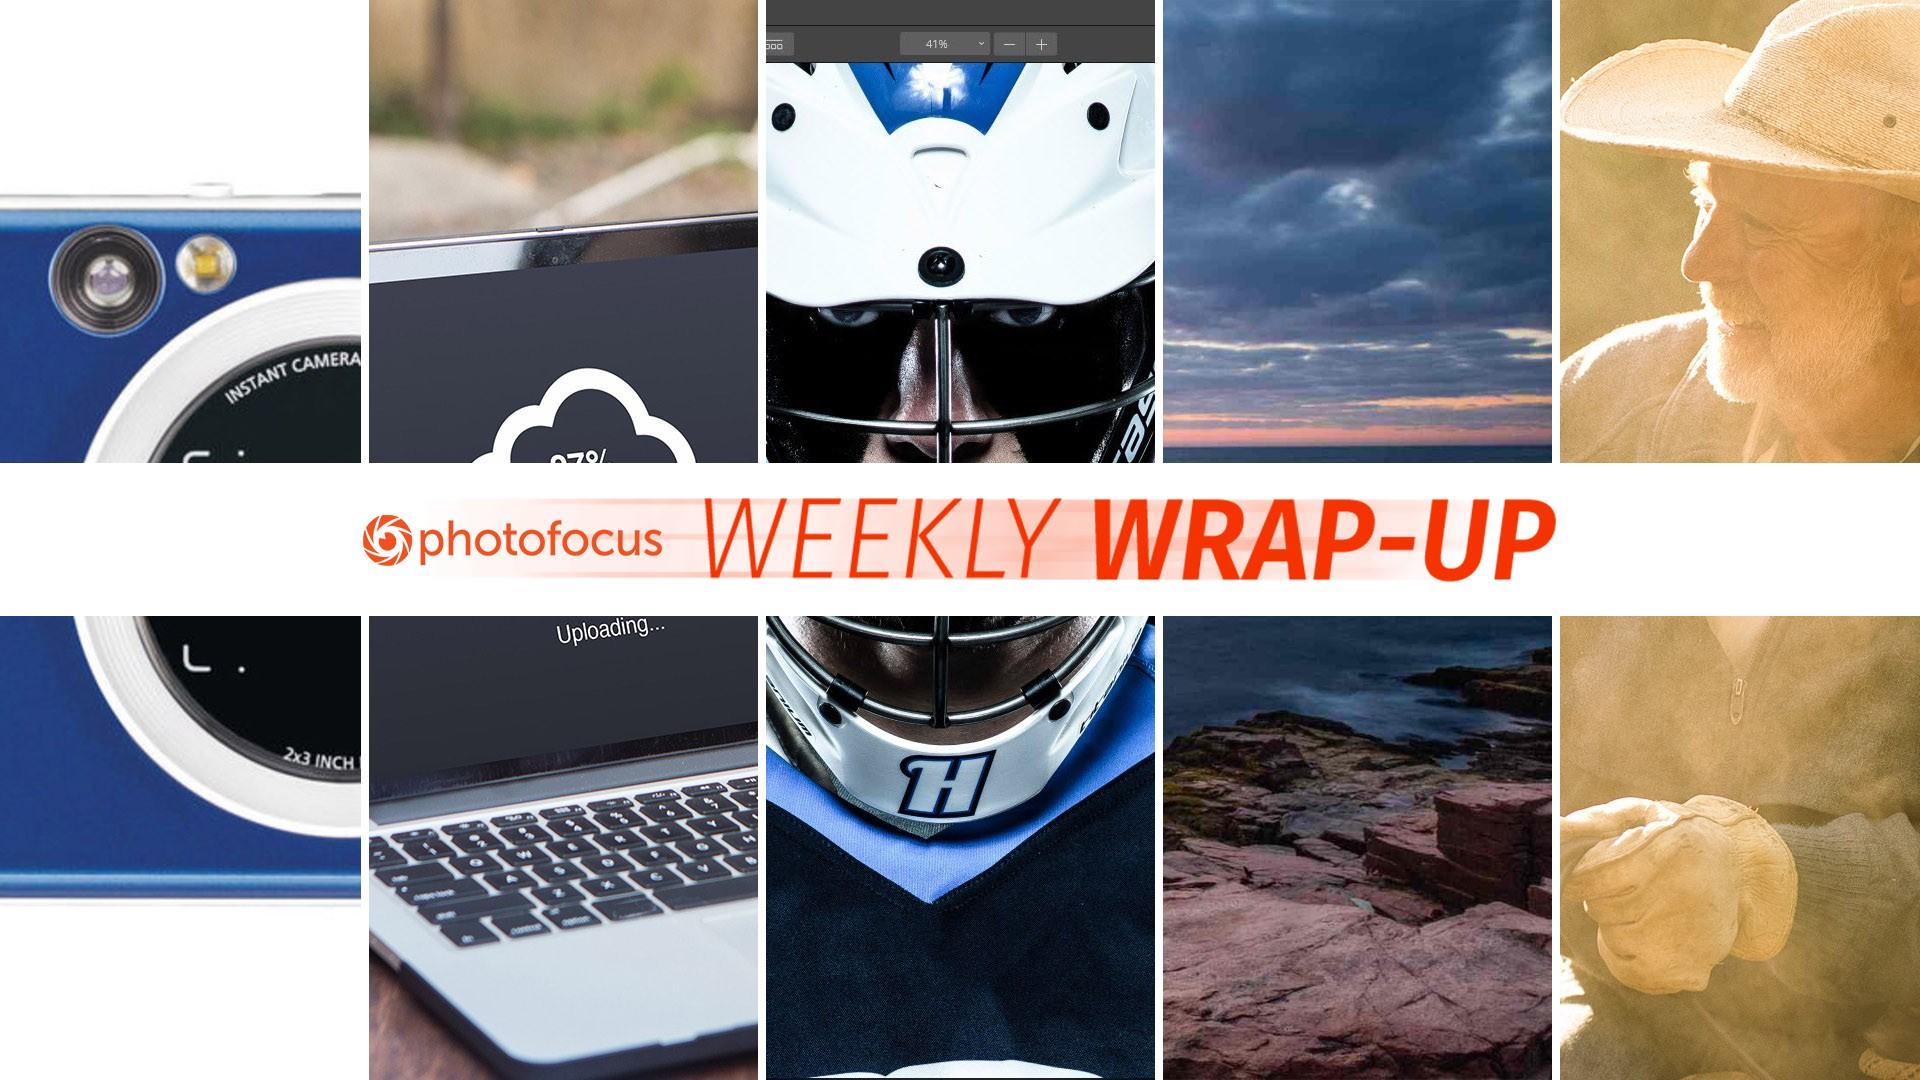 Featured articles for the week of 6/9-15, 2019 on Photofocus. The Weekly Wrap-Up